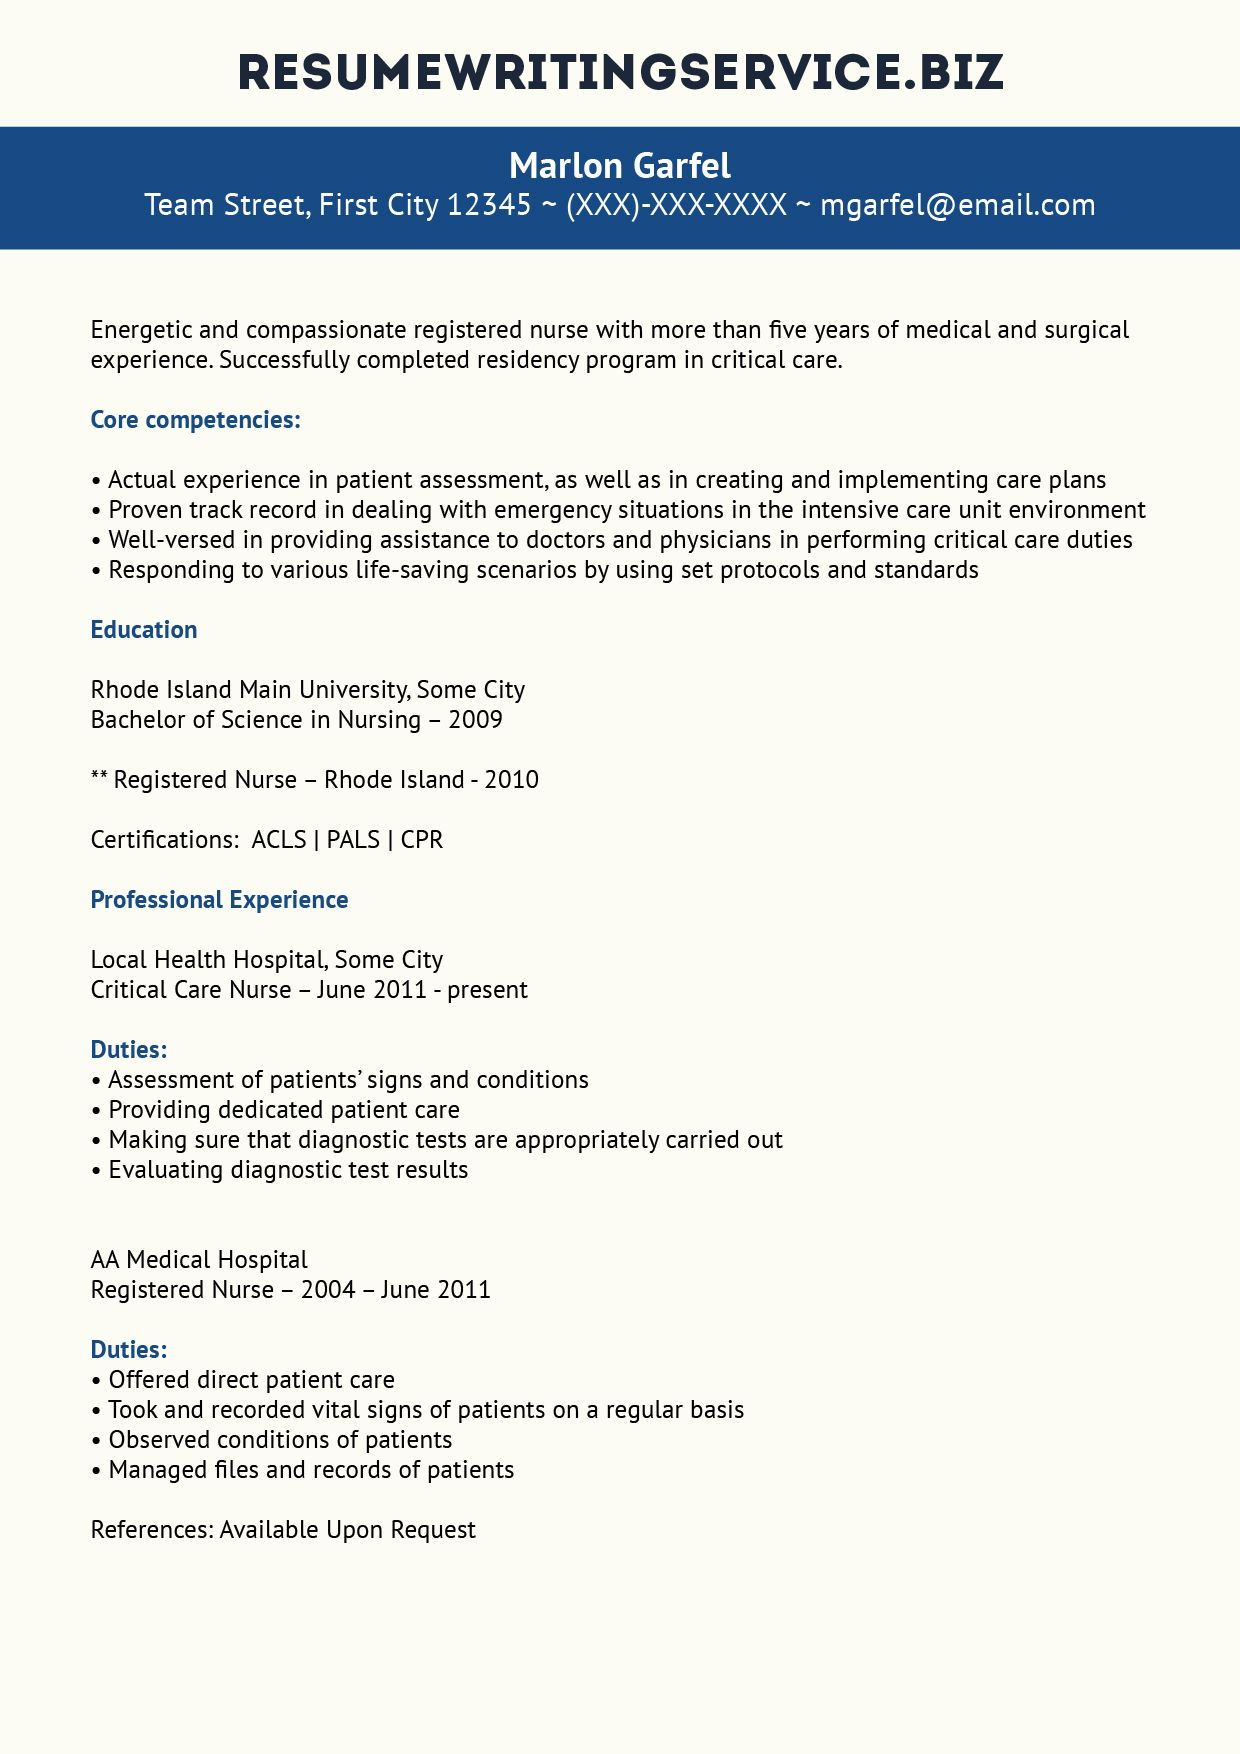 Critical Care Nurse Resume Sample | Nursing resume, Critical ...